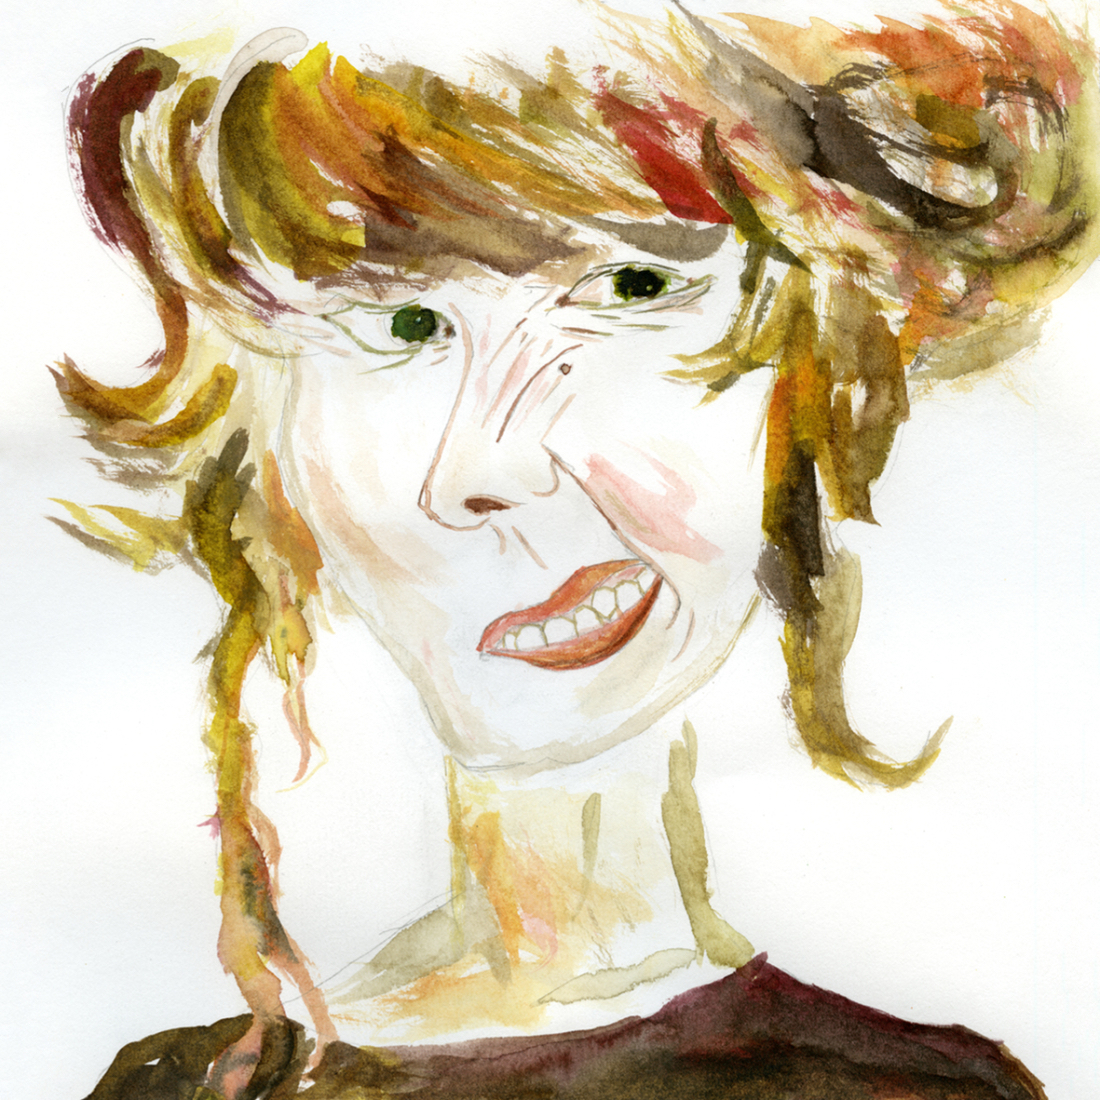 self-portrait-touched-up